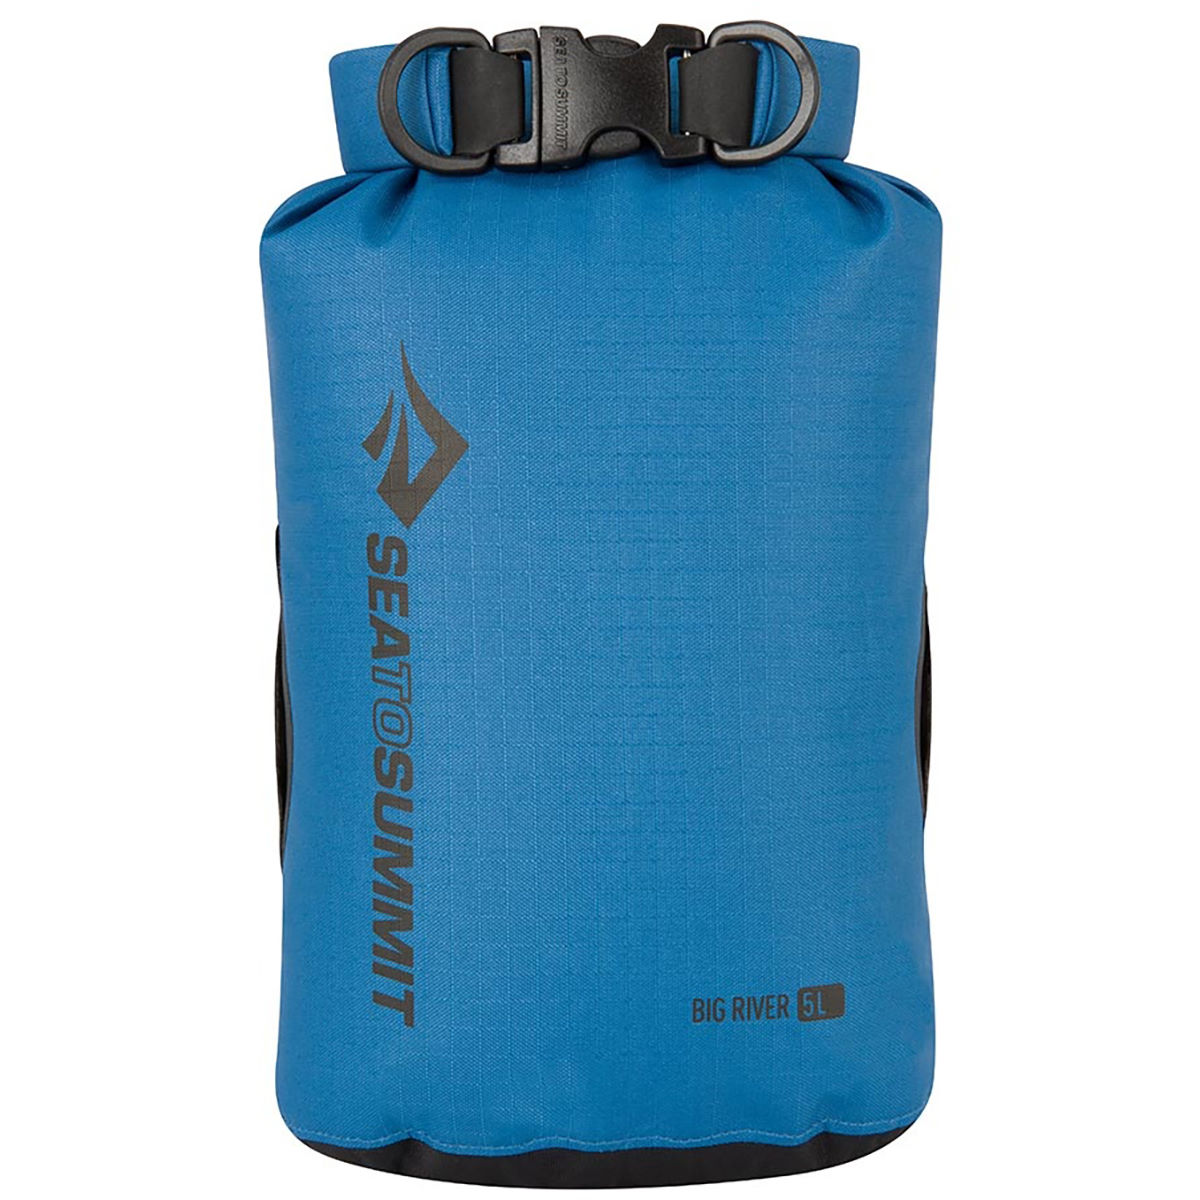 Sea To Summit Big River Dry Bag (5 Litre)   Dry Bags